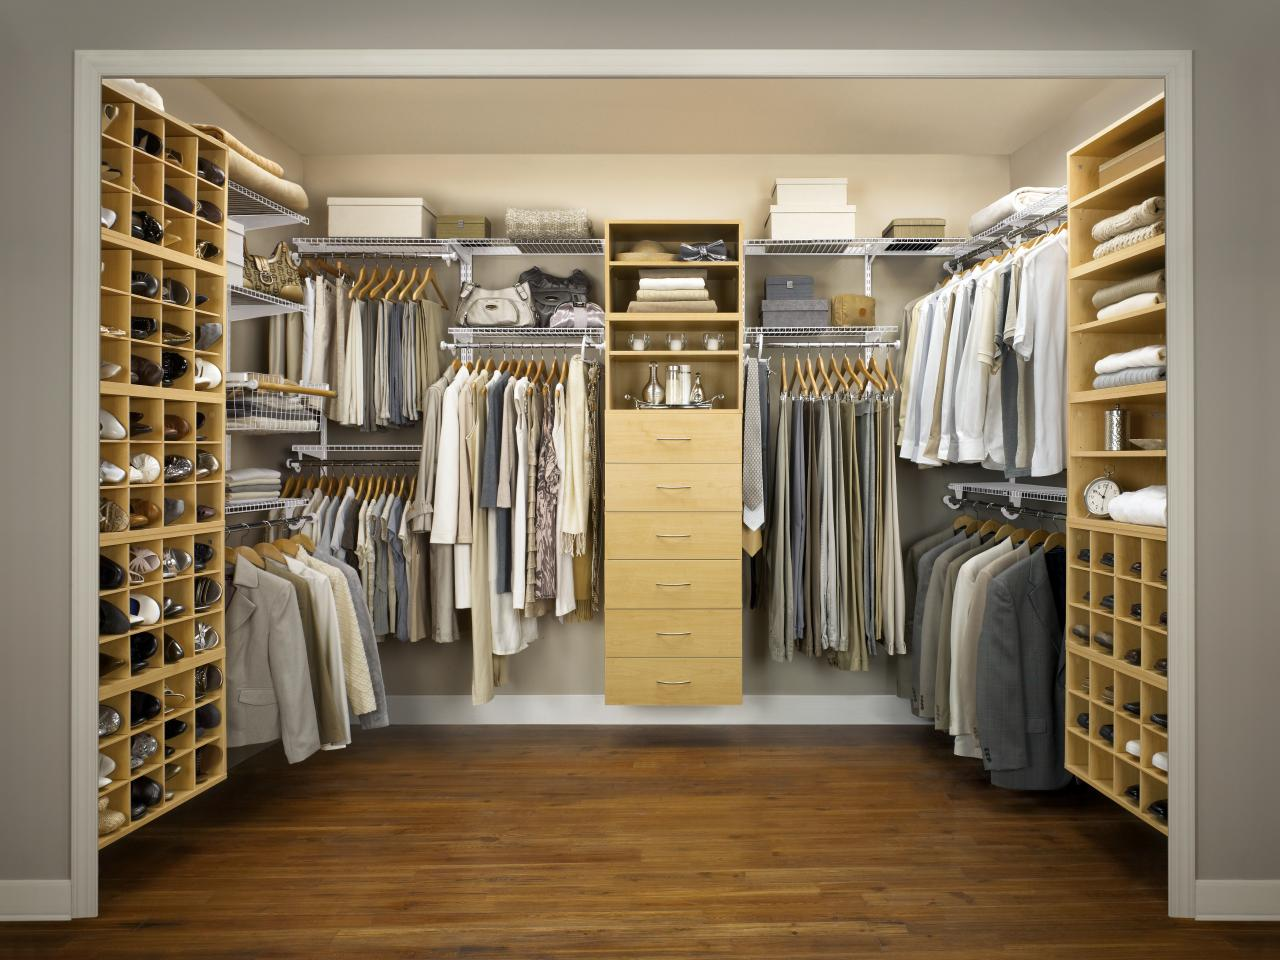 spacious serenity the distinctive characteristic of this master closet